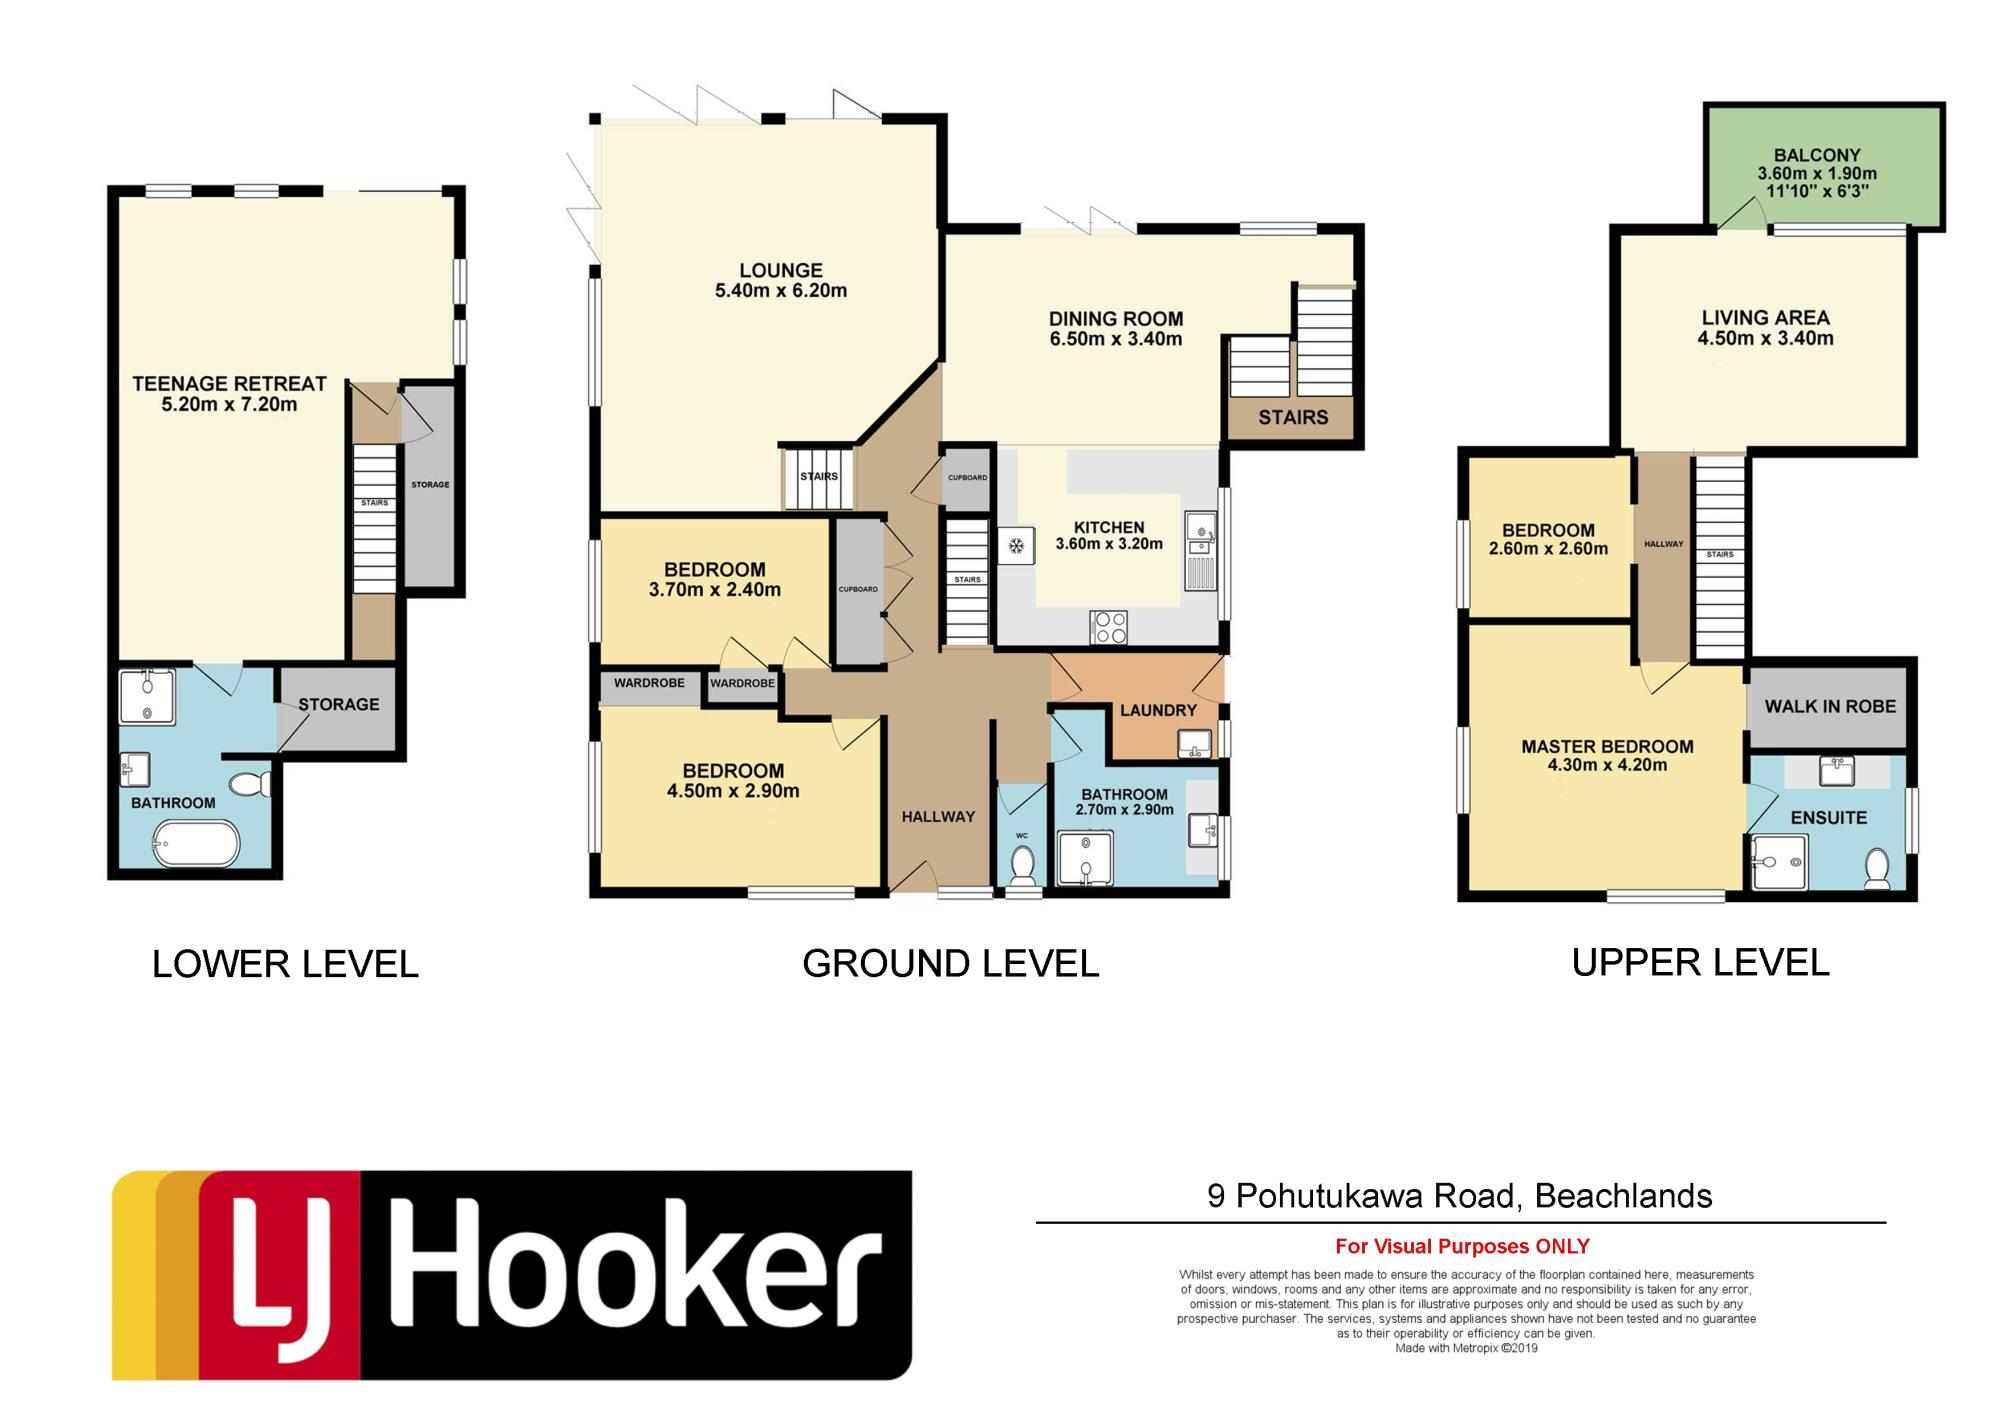 9 Pohutukawa Road Beachlandsproperty floorplan image